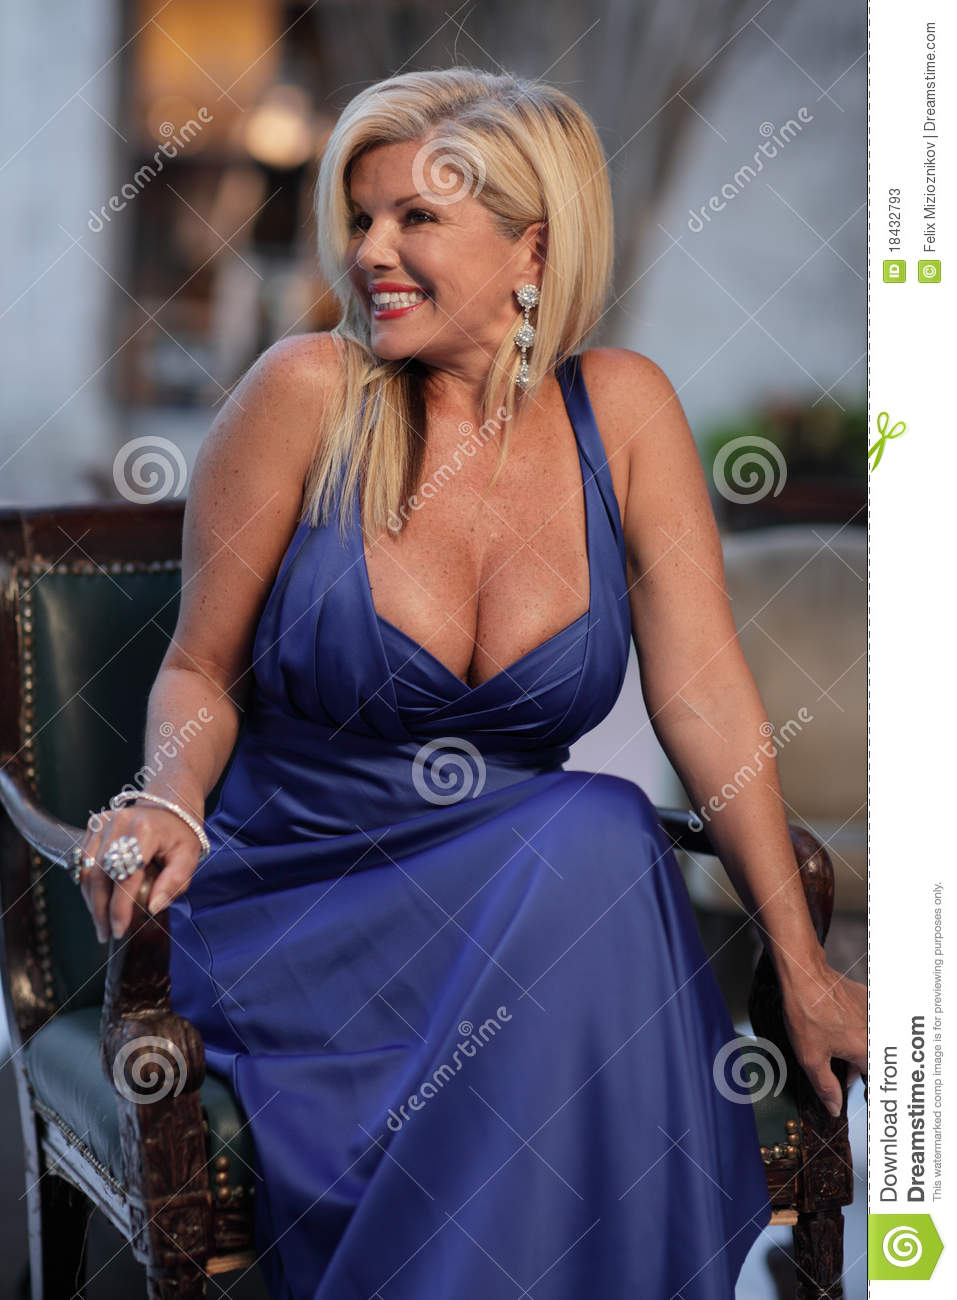 Hot middle aged women